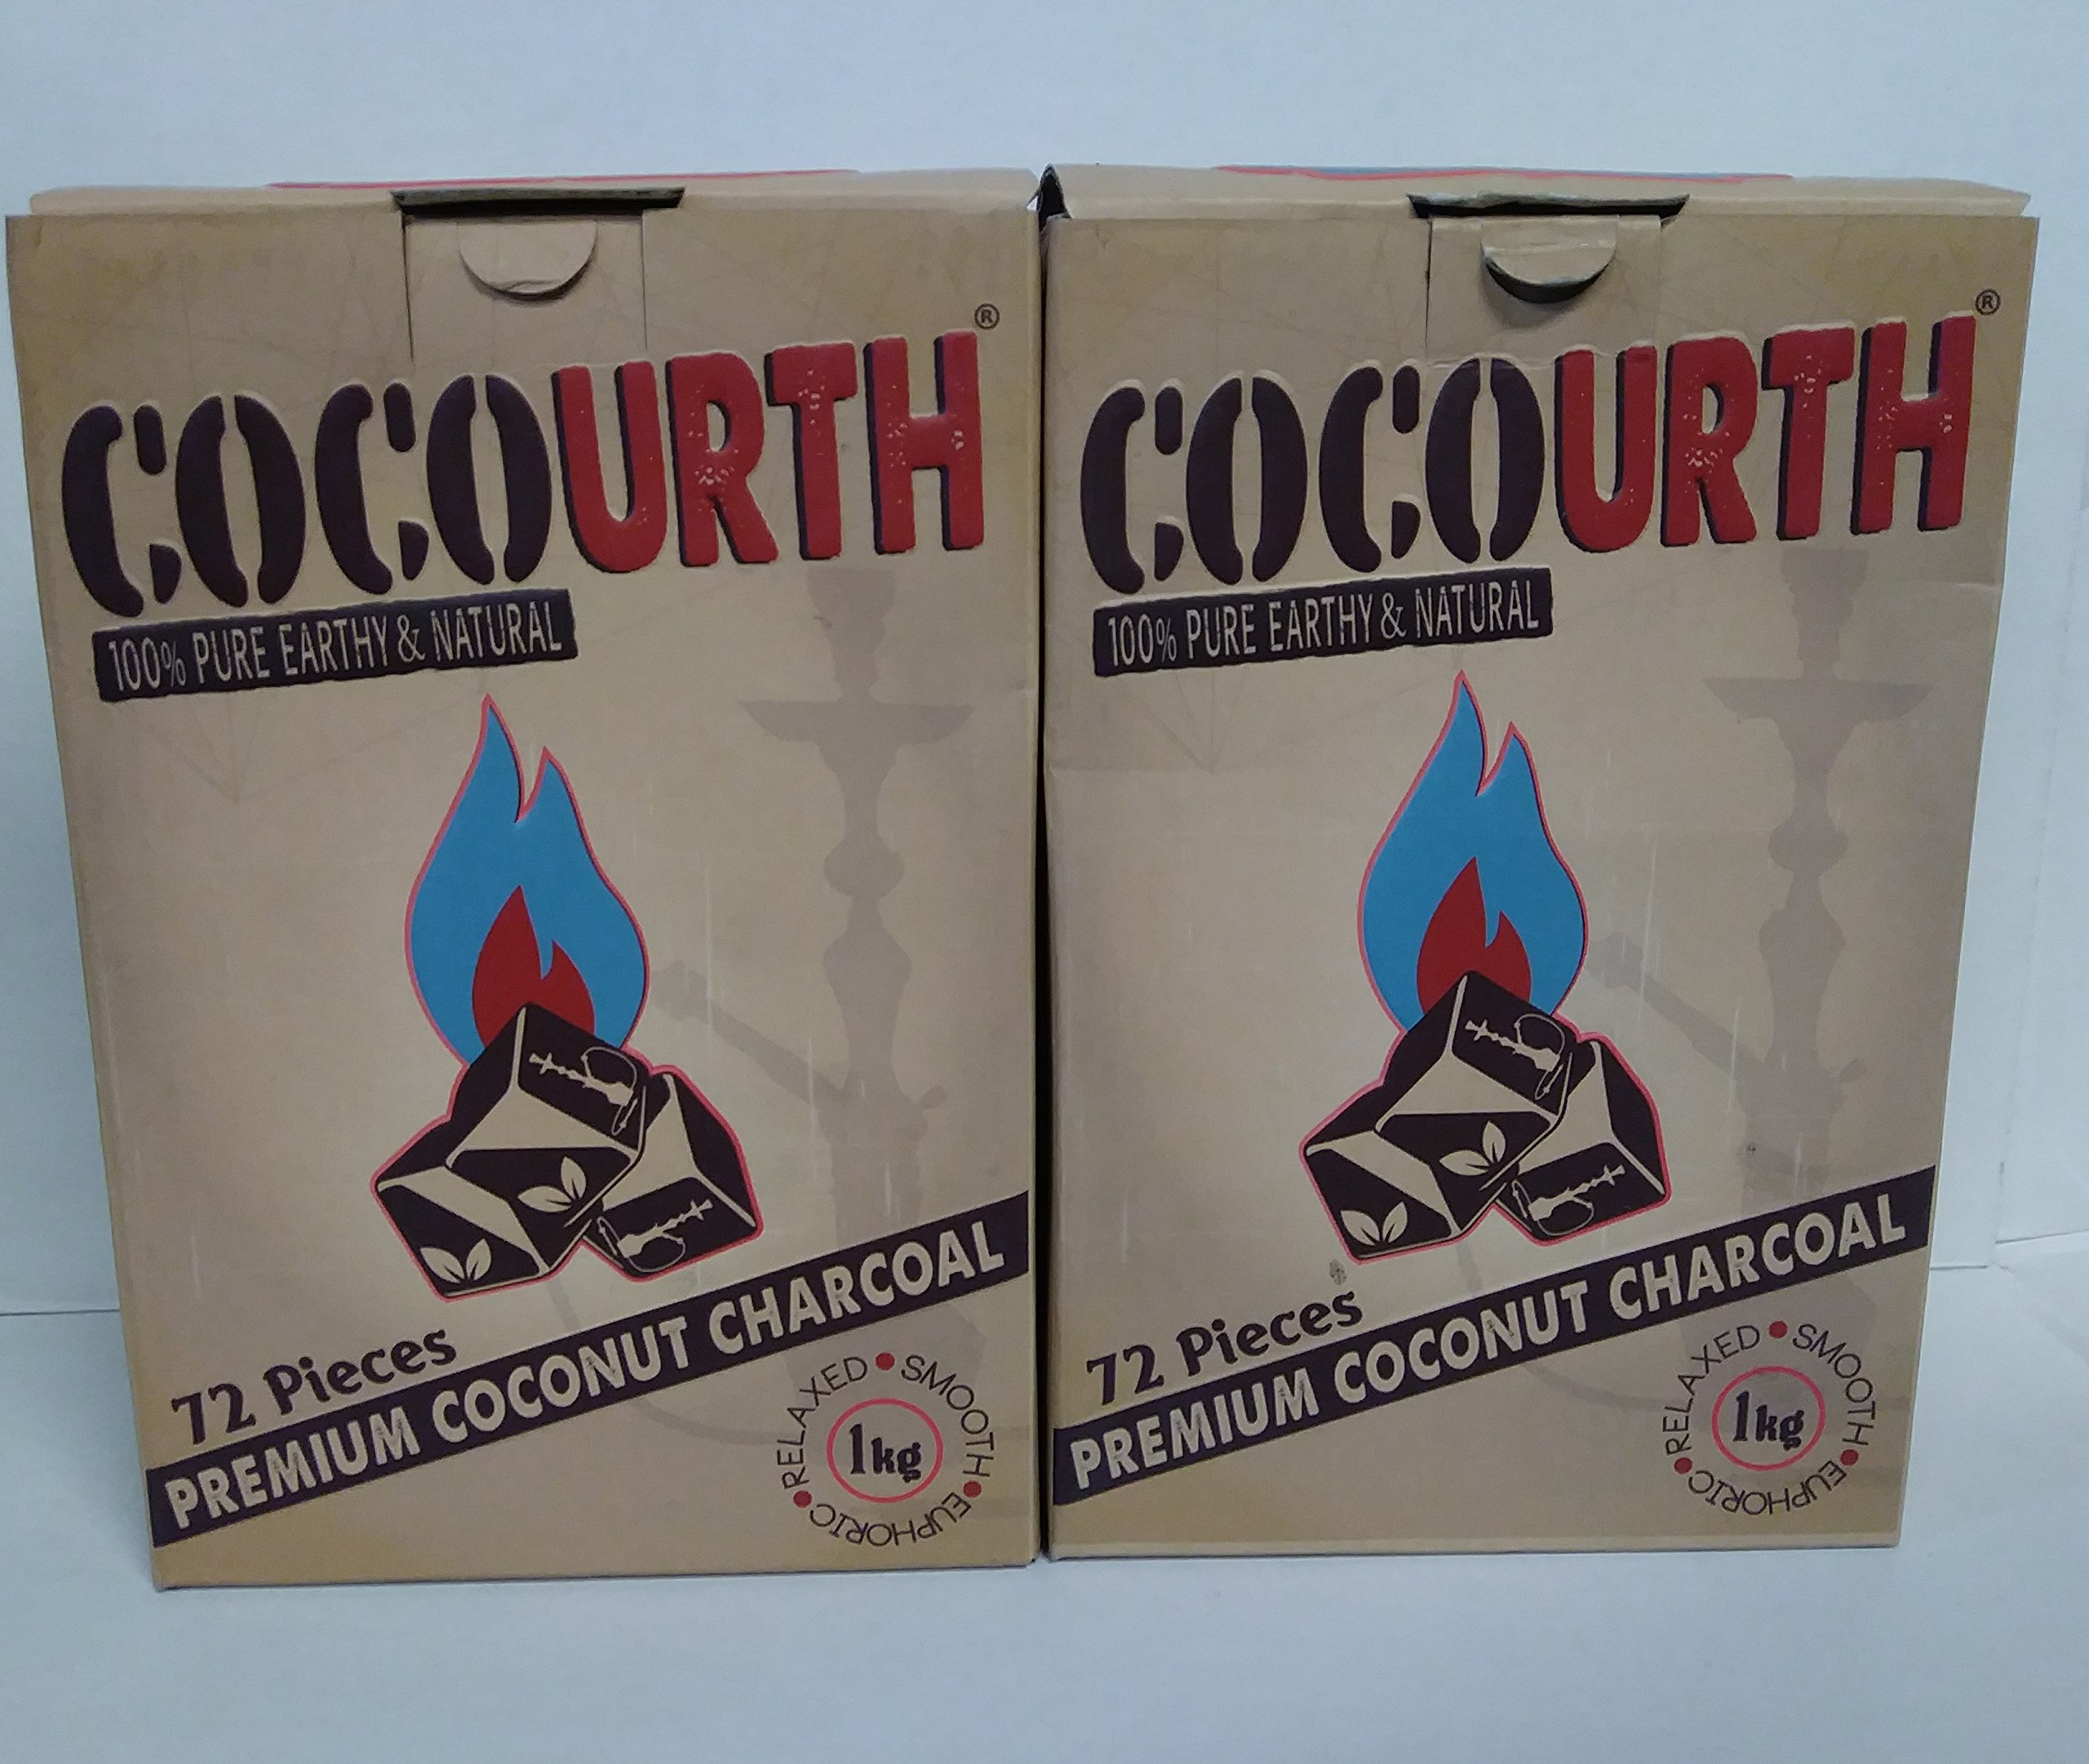 2 Boxes of Cubes (25x25x25 MMS) Coconut Shell charcoals (100% Natural) 72 Pieces Inside Each Box by Goldfinch